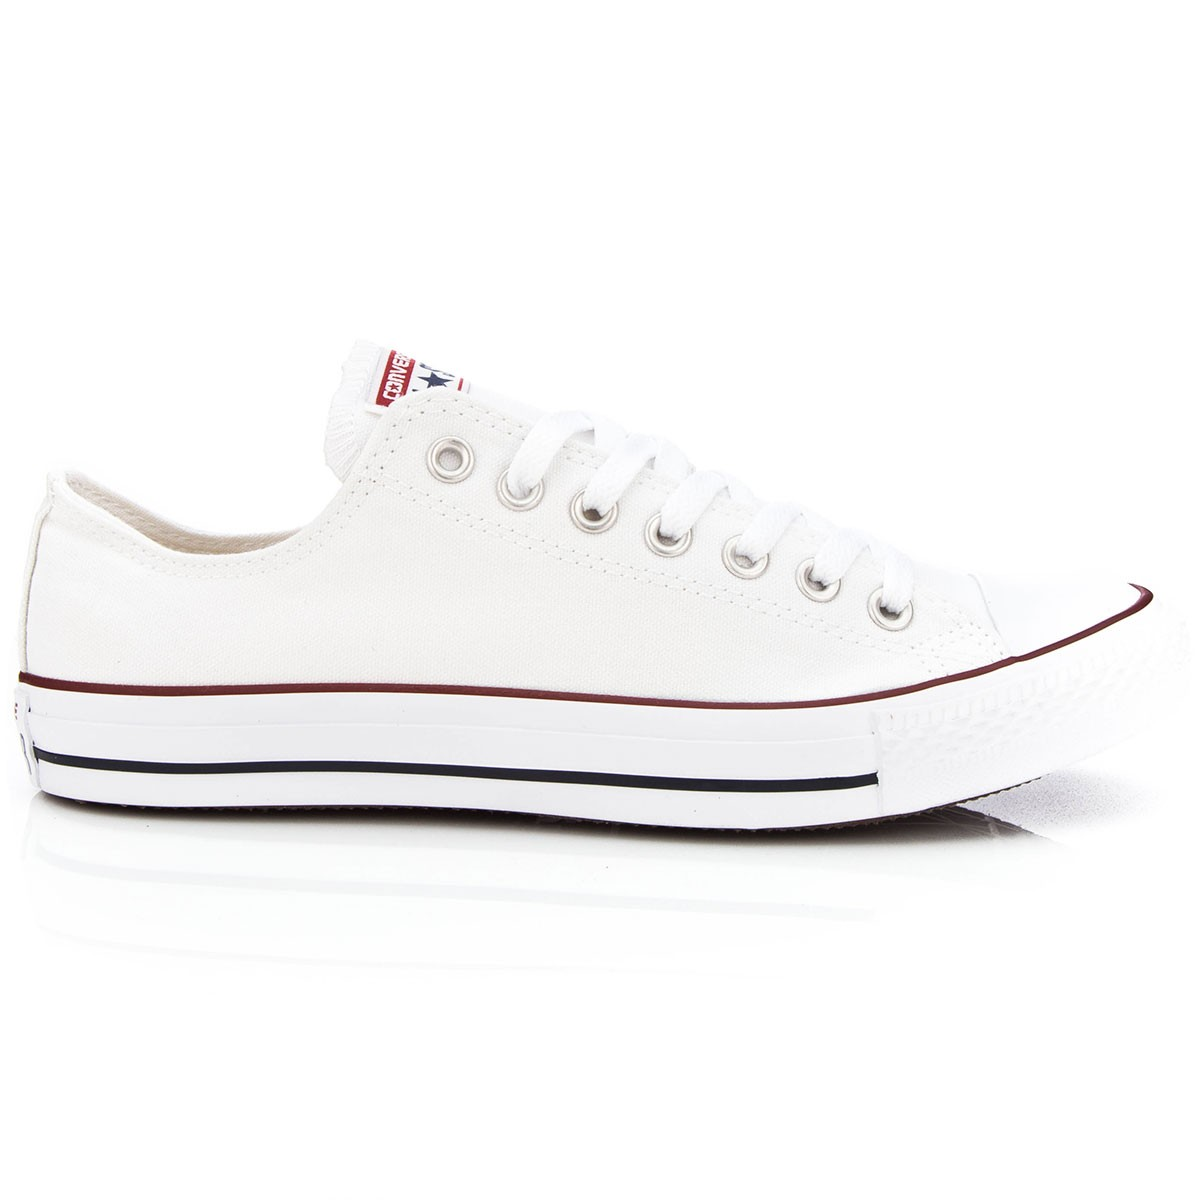 0efaedfe3ab czech converse shoes canada womens converse all star shoes greyconverse ox  white 5d893 c32e1  good white converse size 2 a775b 70da0